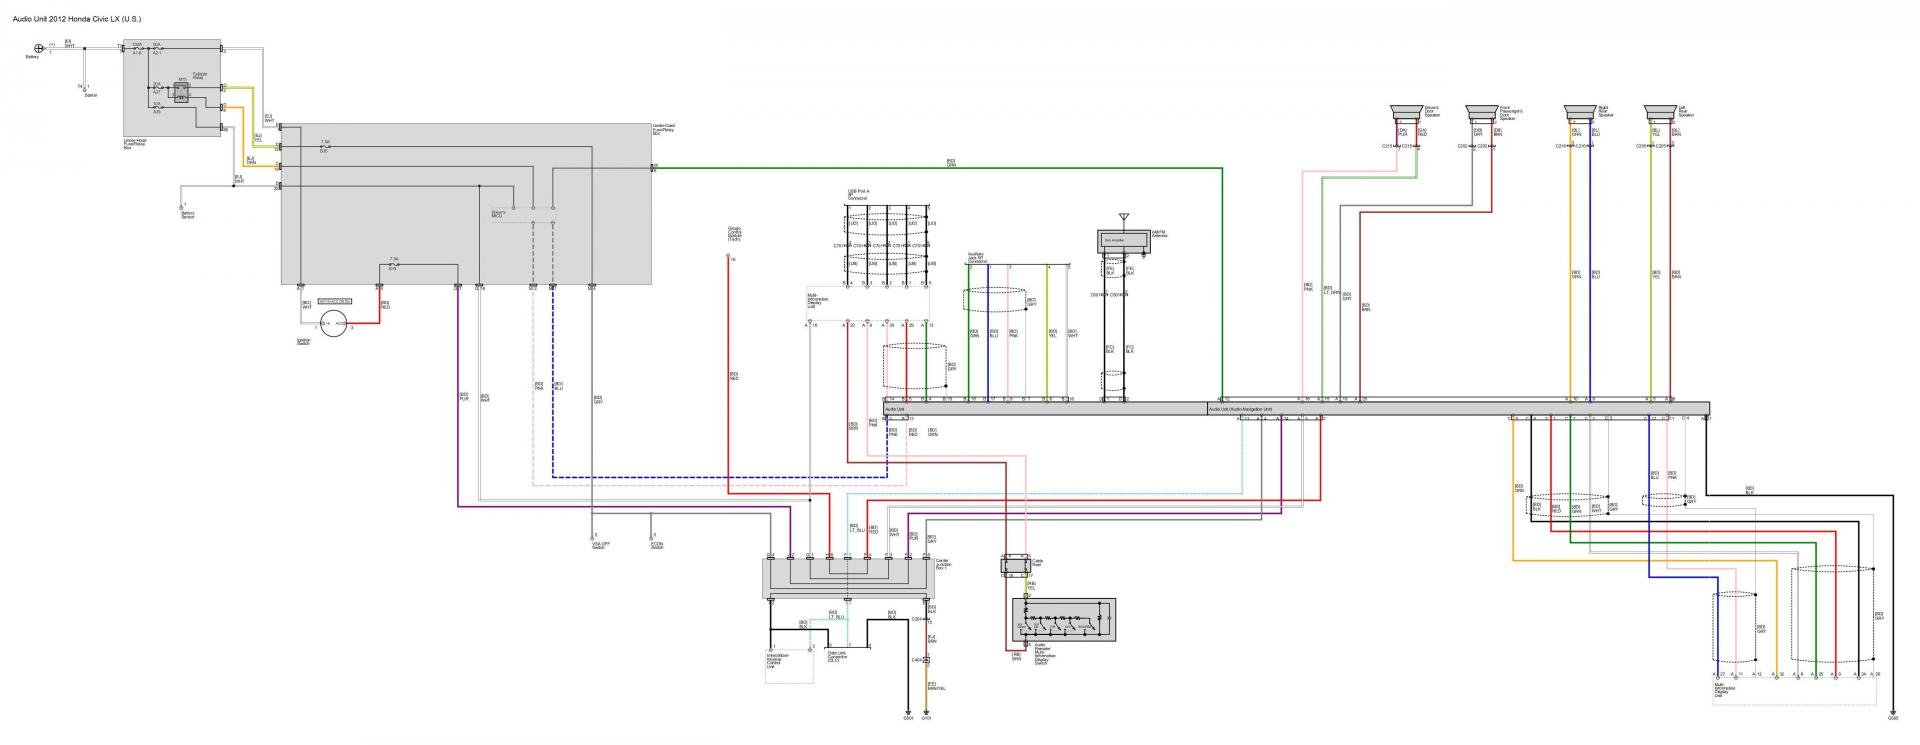 Audio Wiring diagrams: Post 'em if you got 'em